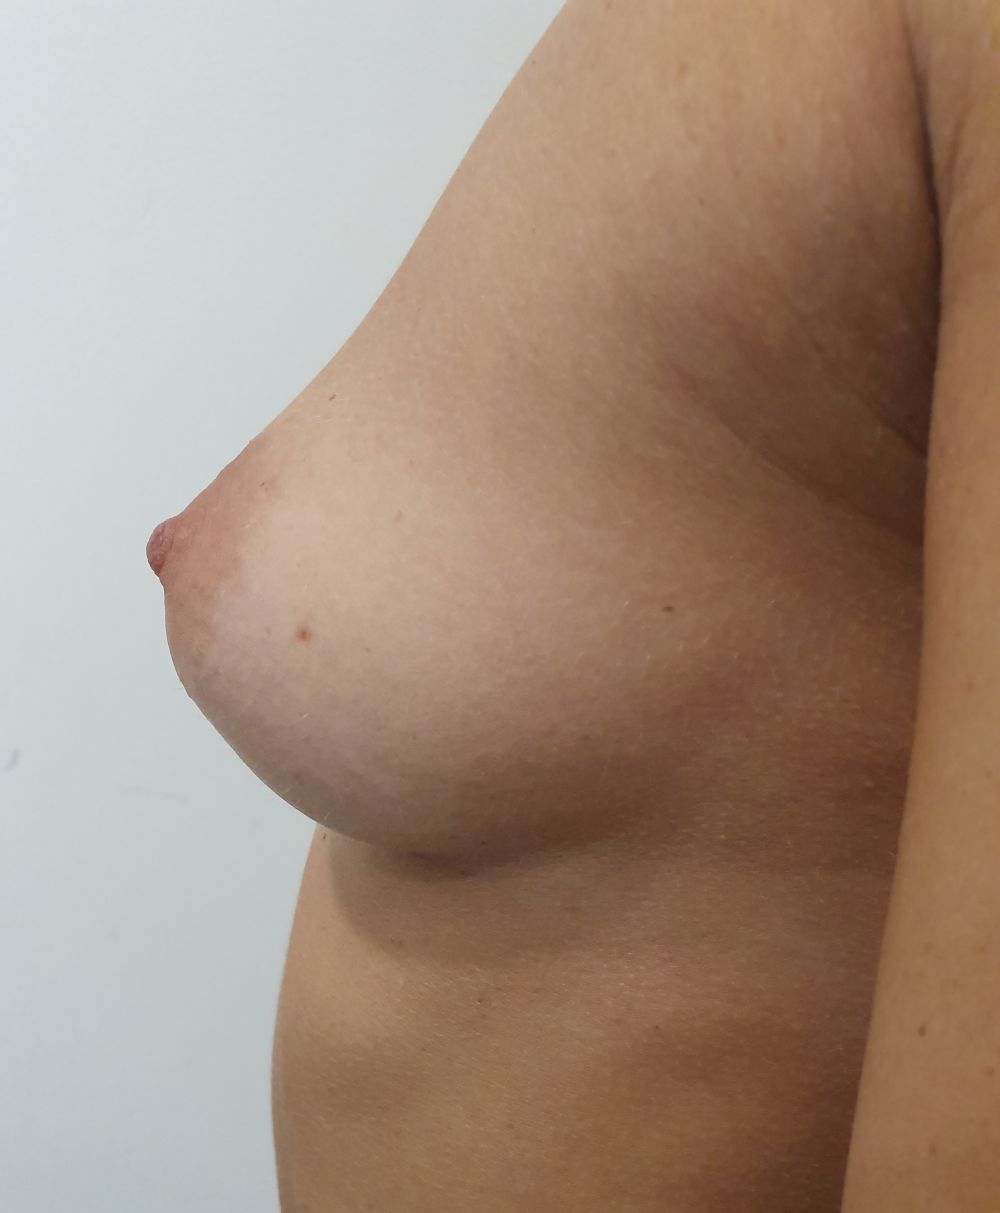 Before augmentation #3